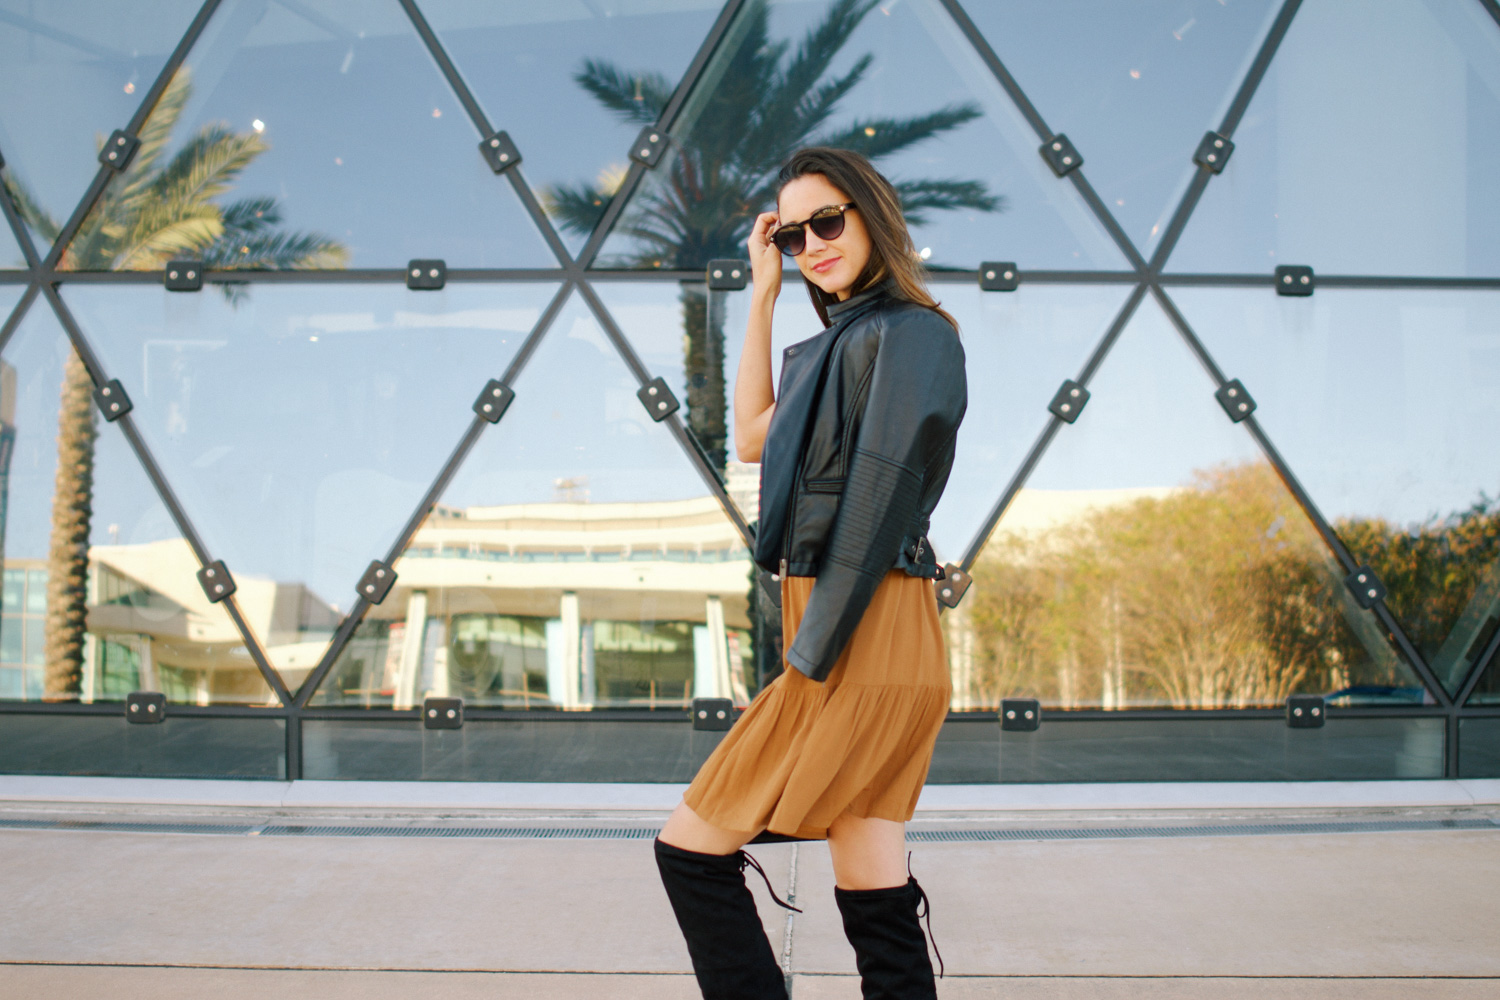 Mustard Dress x Over The Knee Boots